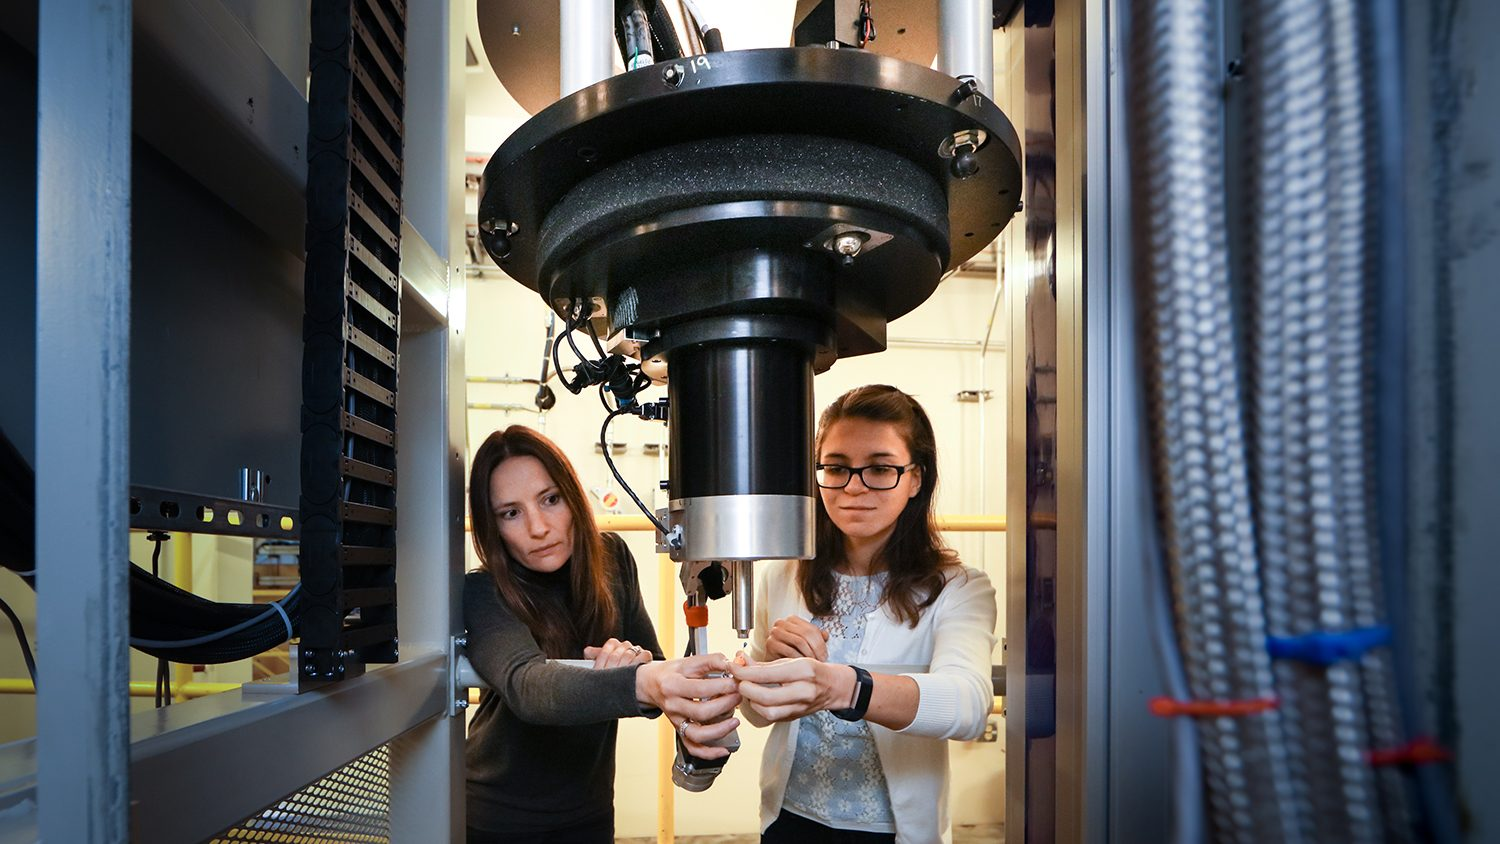 CALS' Flora Meilleur and Gabriela Schroder in the Oak Ridge National Laboratories working with the world's largest neutron source.